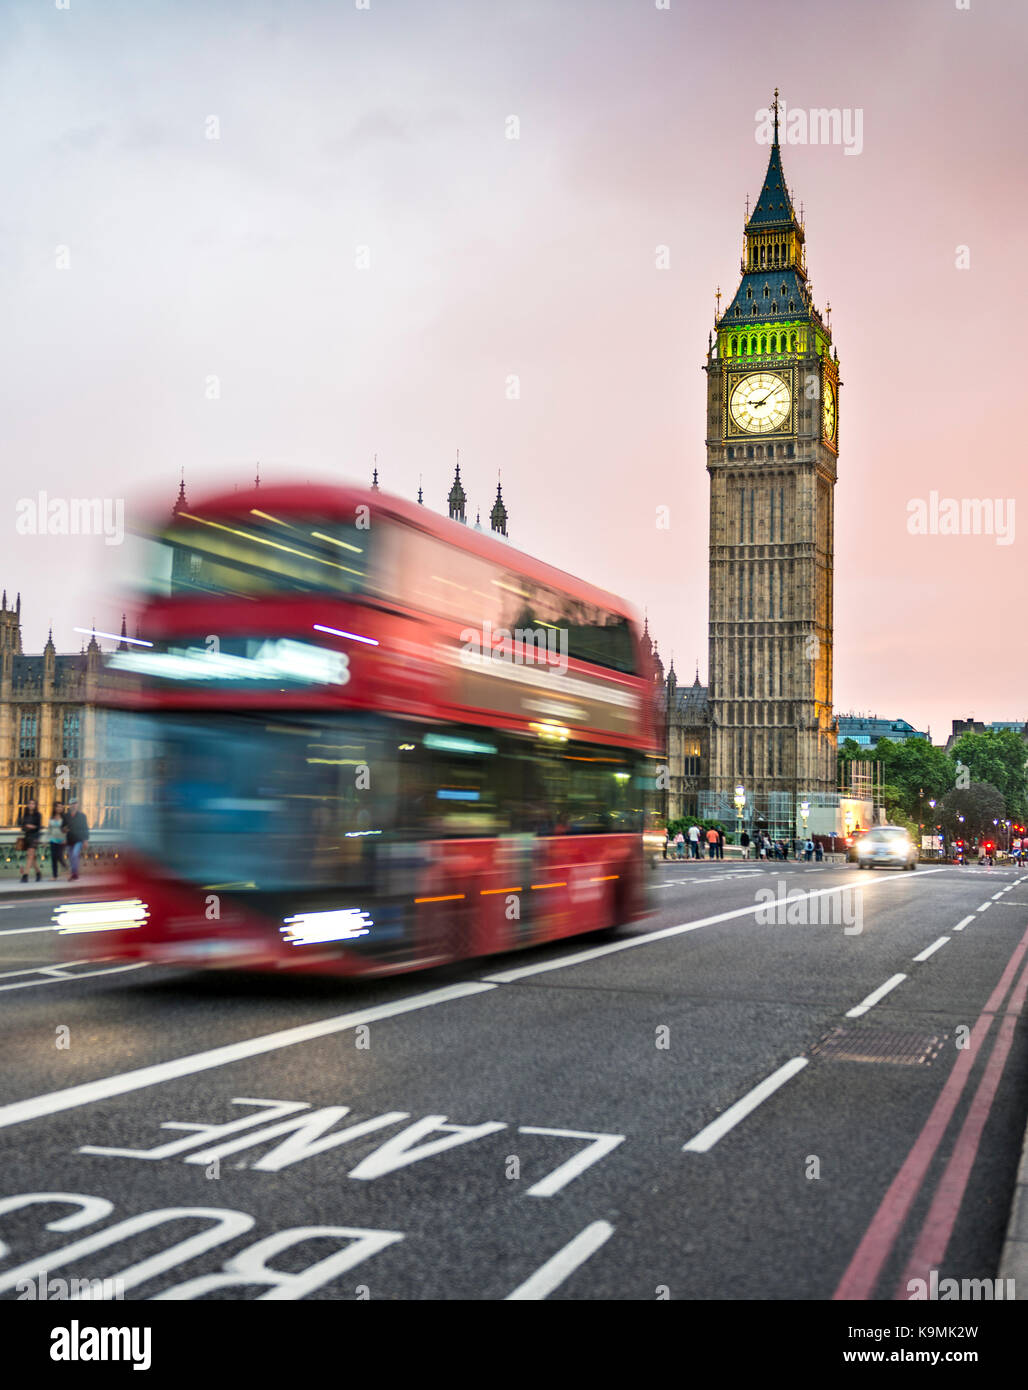 Red double-decker bus on the Westminster Bridge, evening twilight, Palace of Westminster and Big Ben, motion blur, - Stock Image